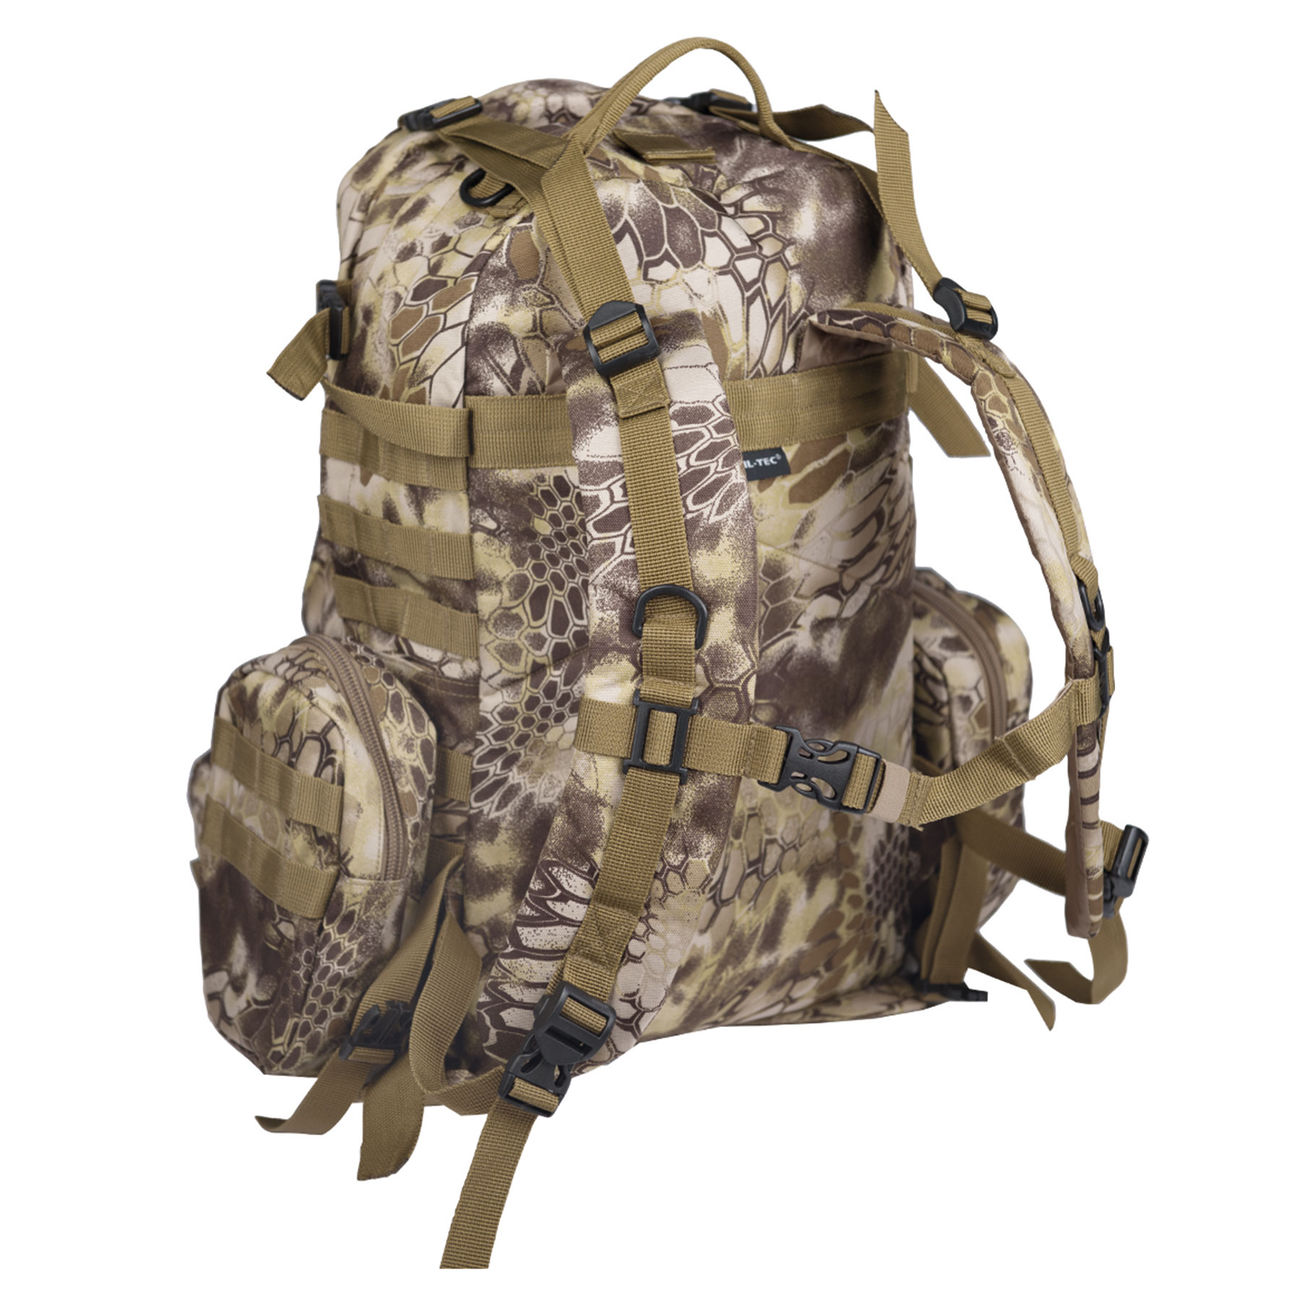 Mil-Tec Rucksack Defense Pack Assembly 36 ltr. mandra tan 1